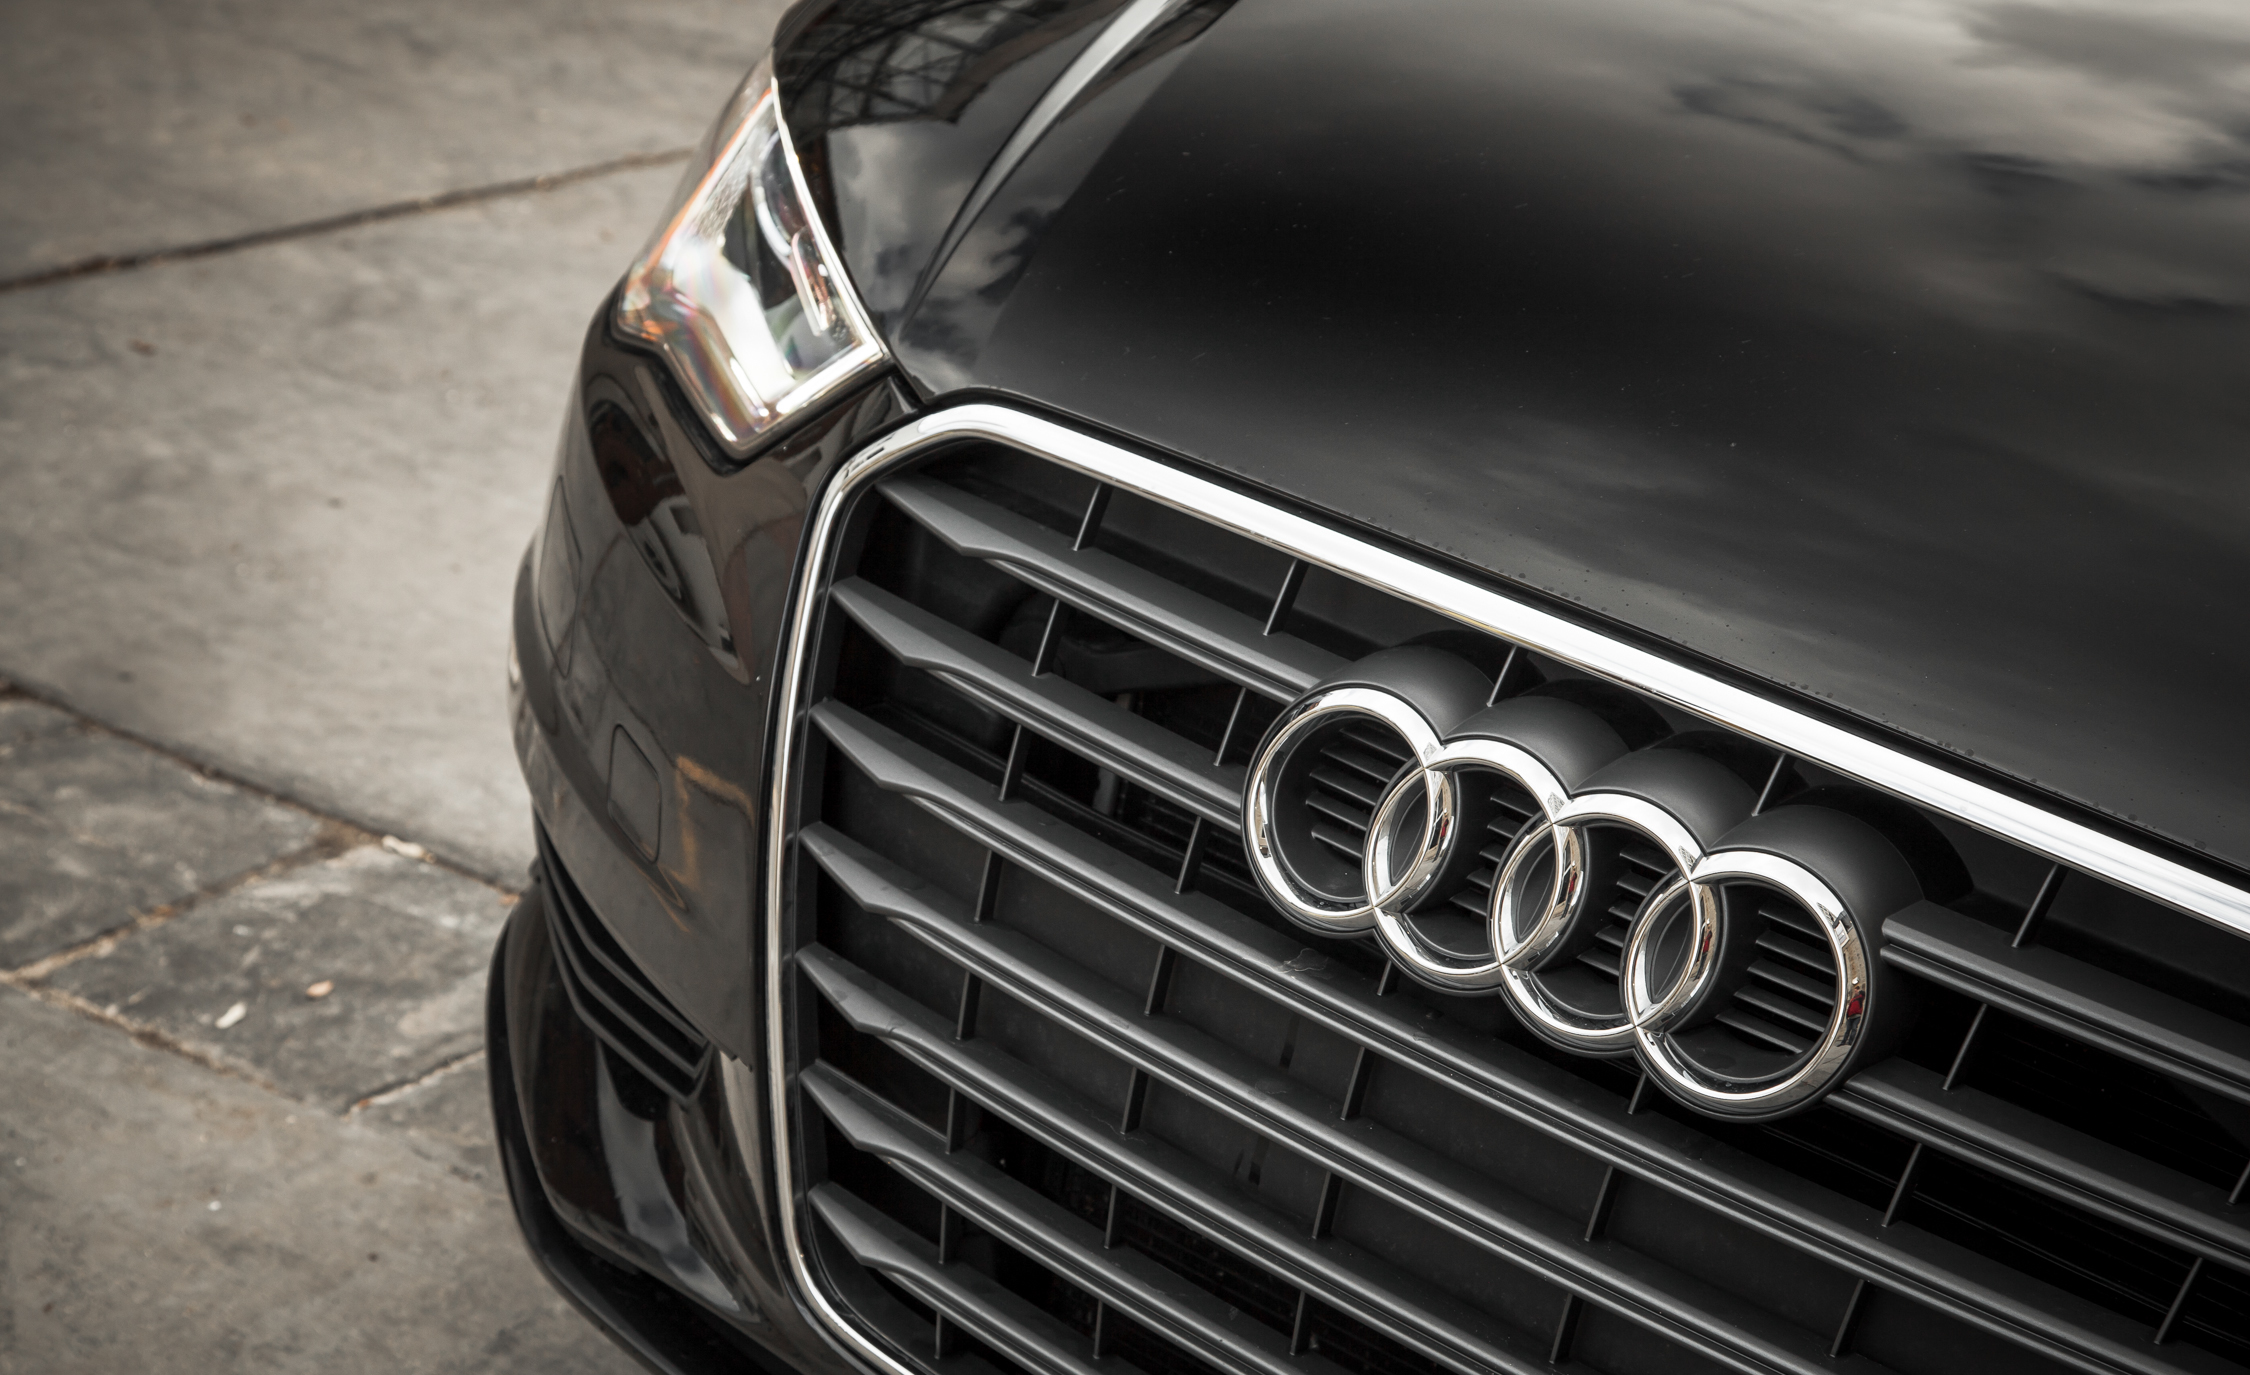 2015 Audi A3 TDI Exterior View Grille And Badge (Photo 27 of 50)